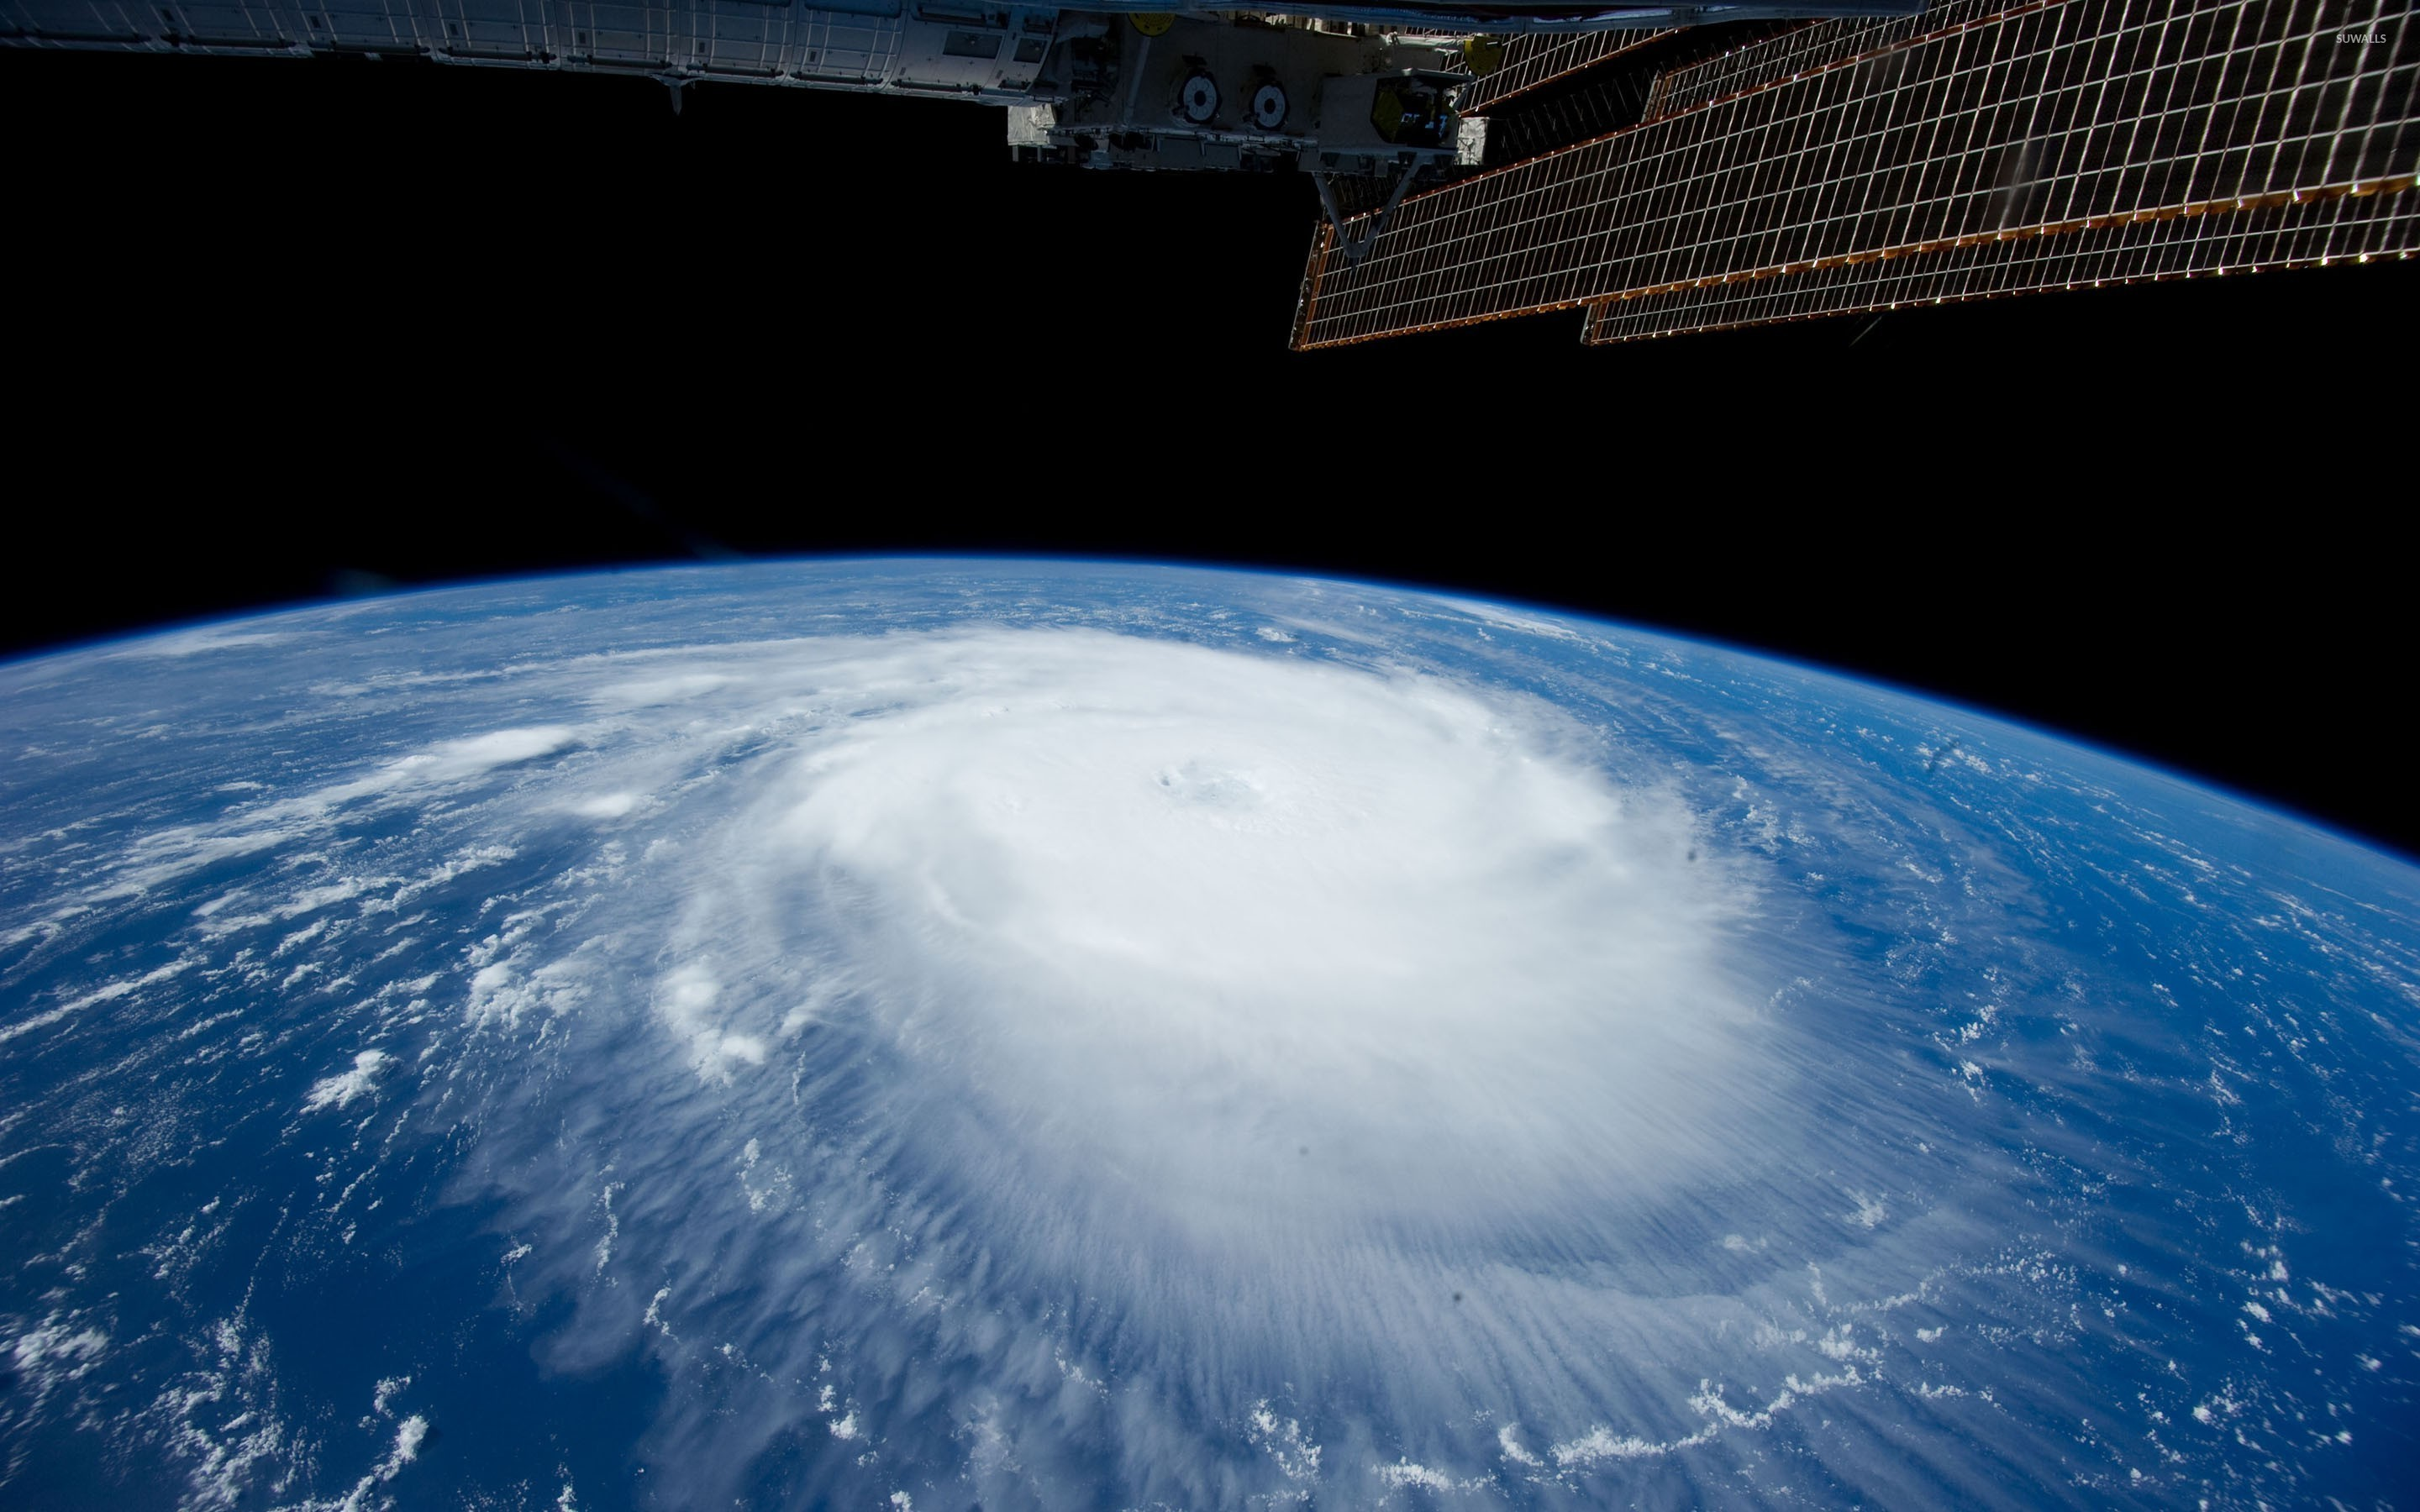 Tropical cyclone seen from outer space wallpaper space for From outer space